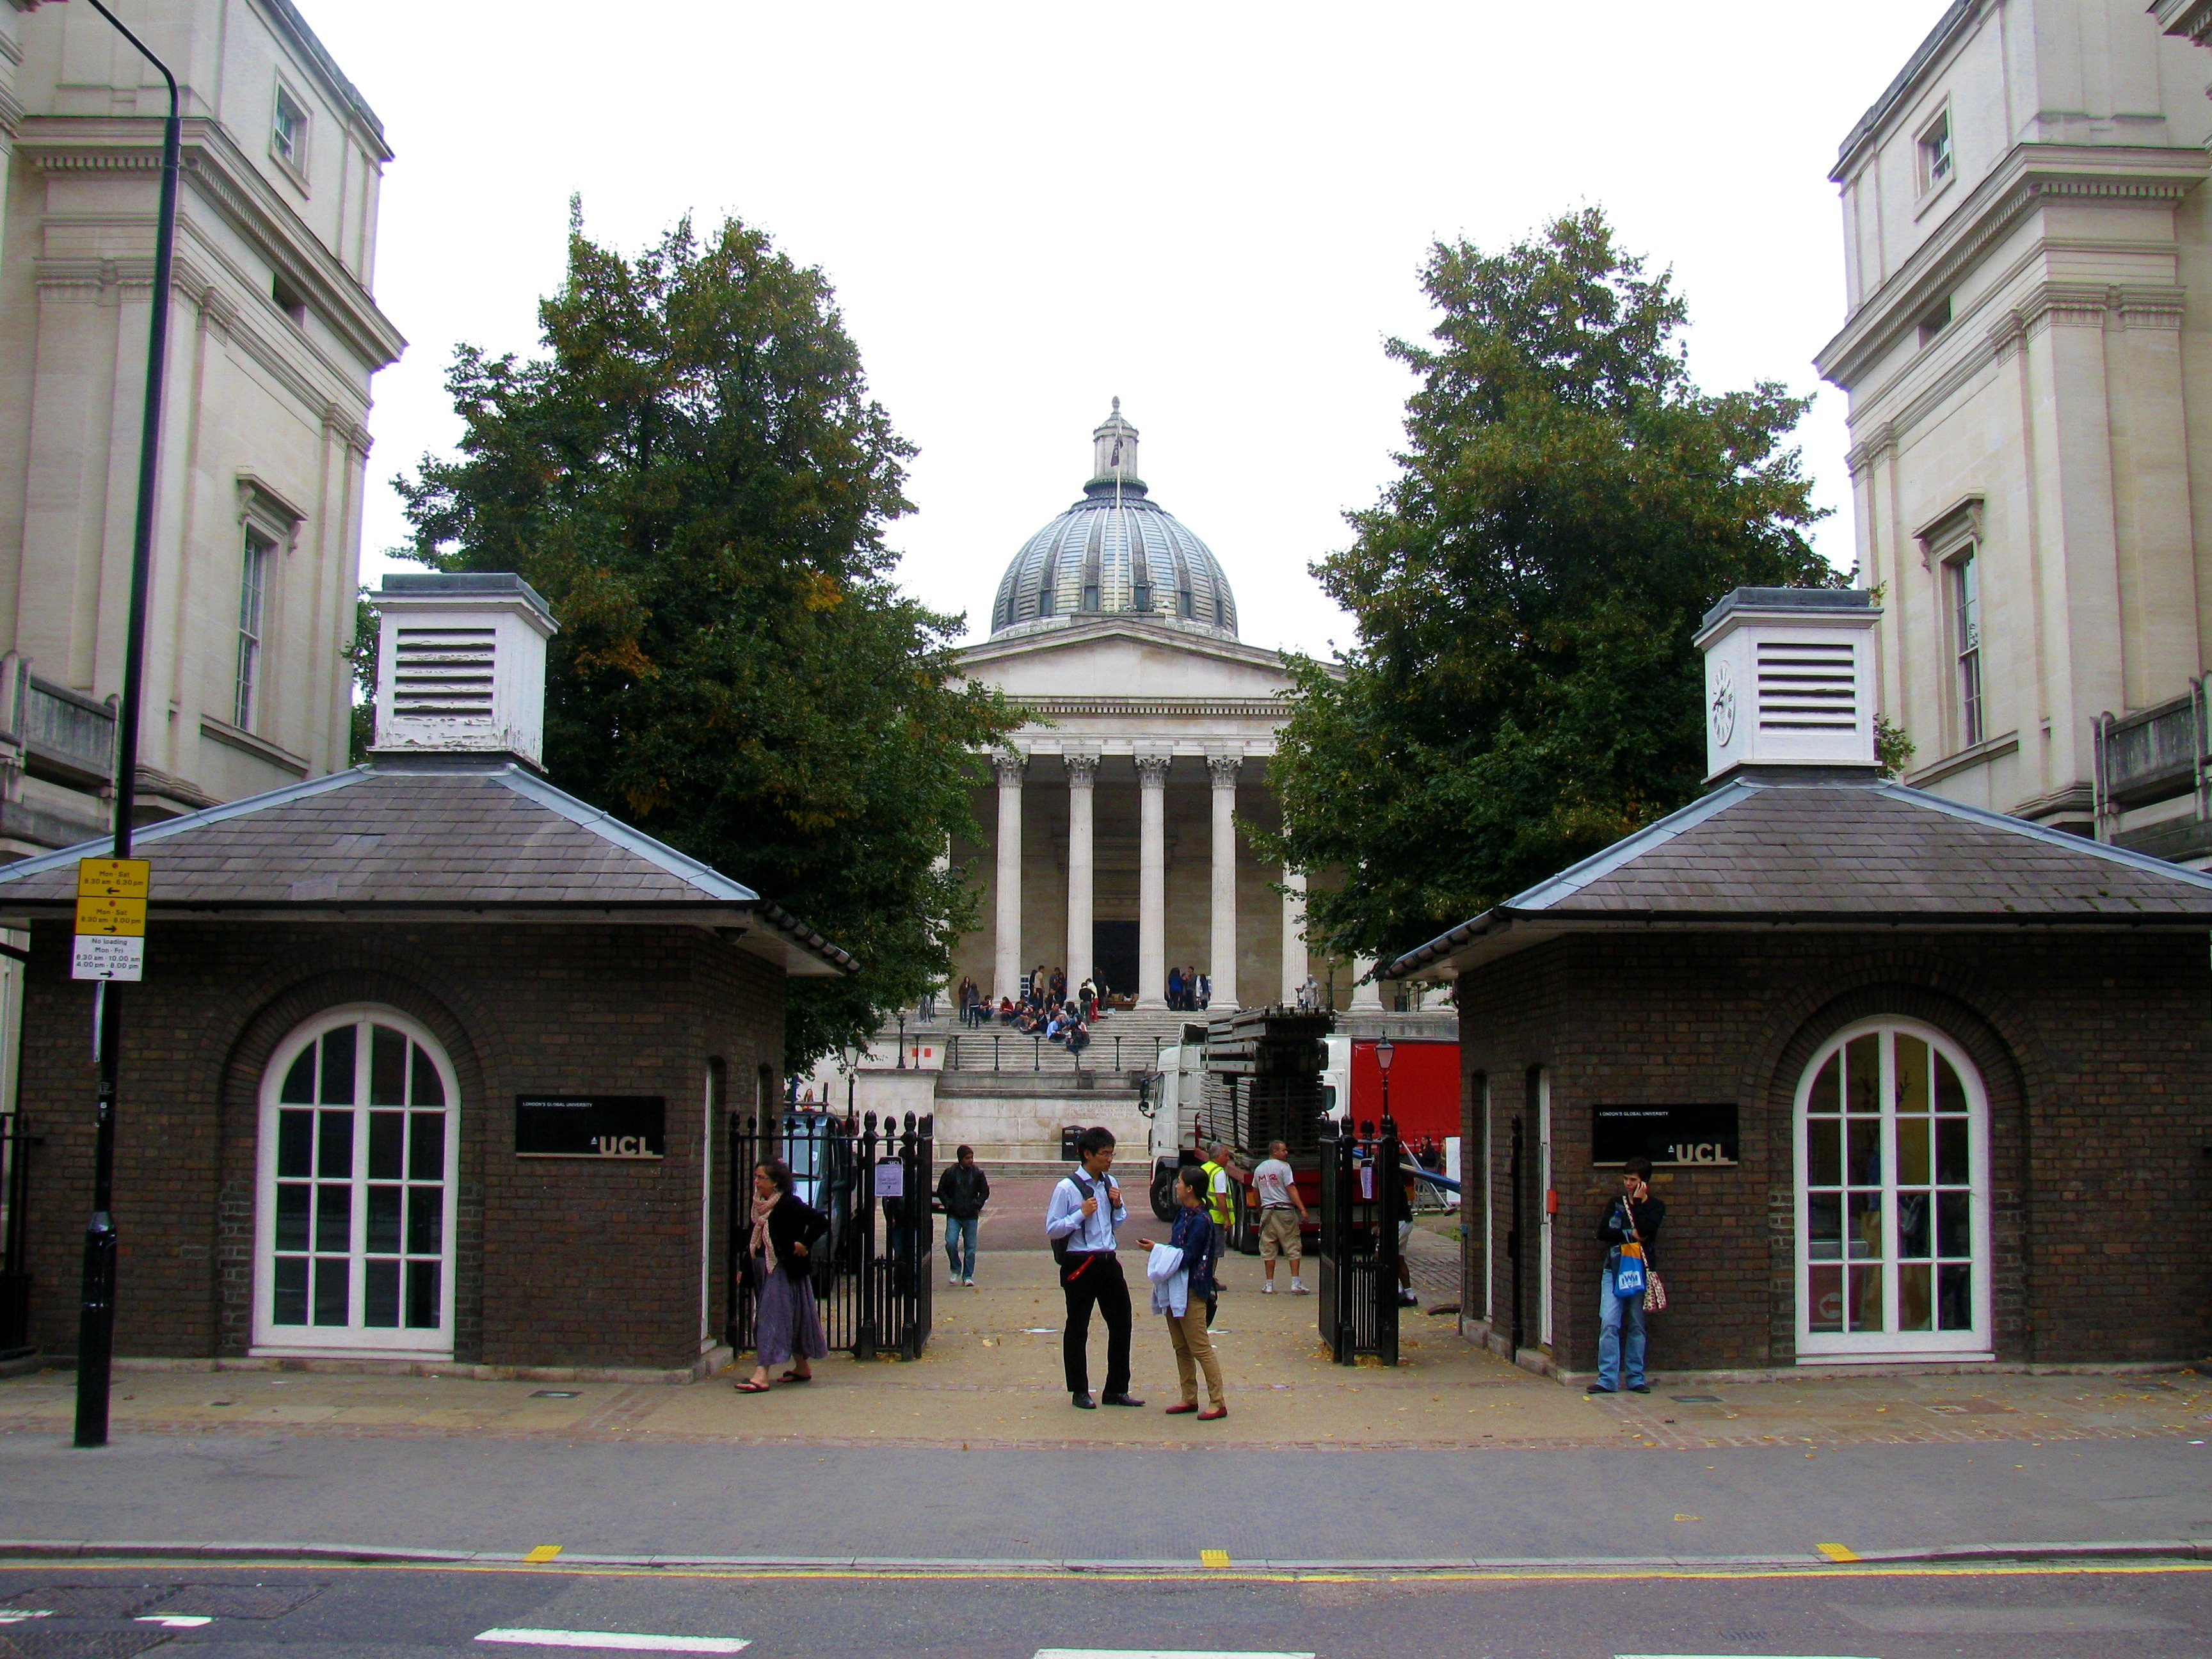 image of University College London